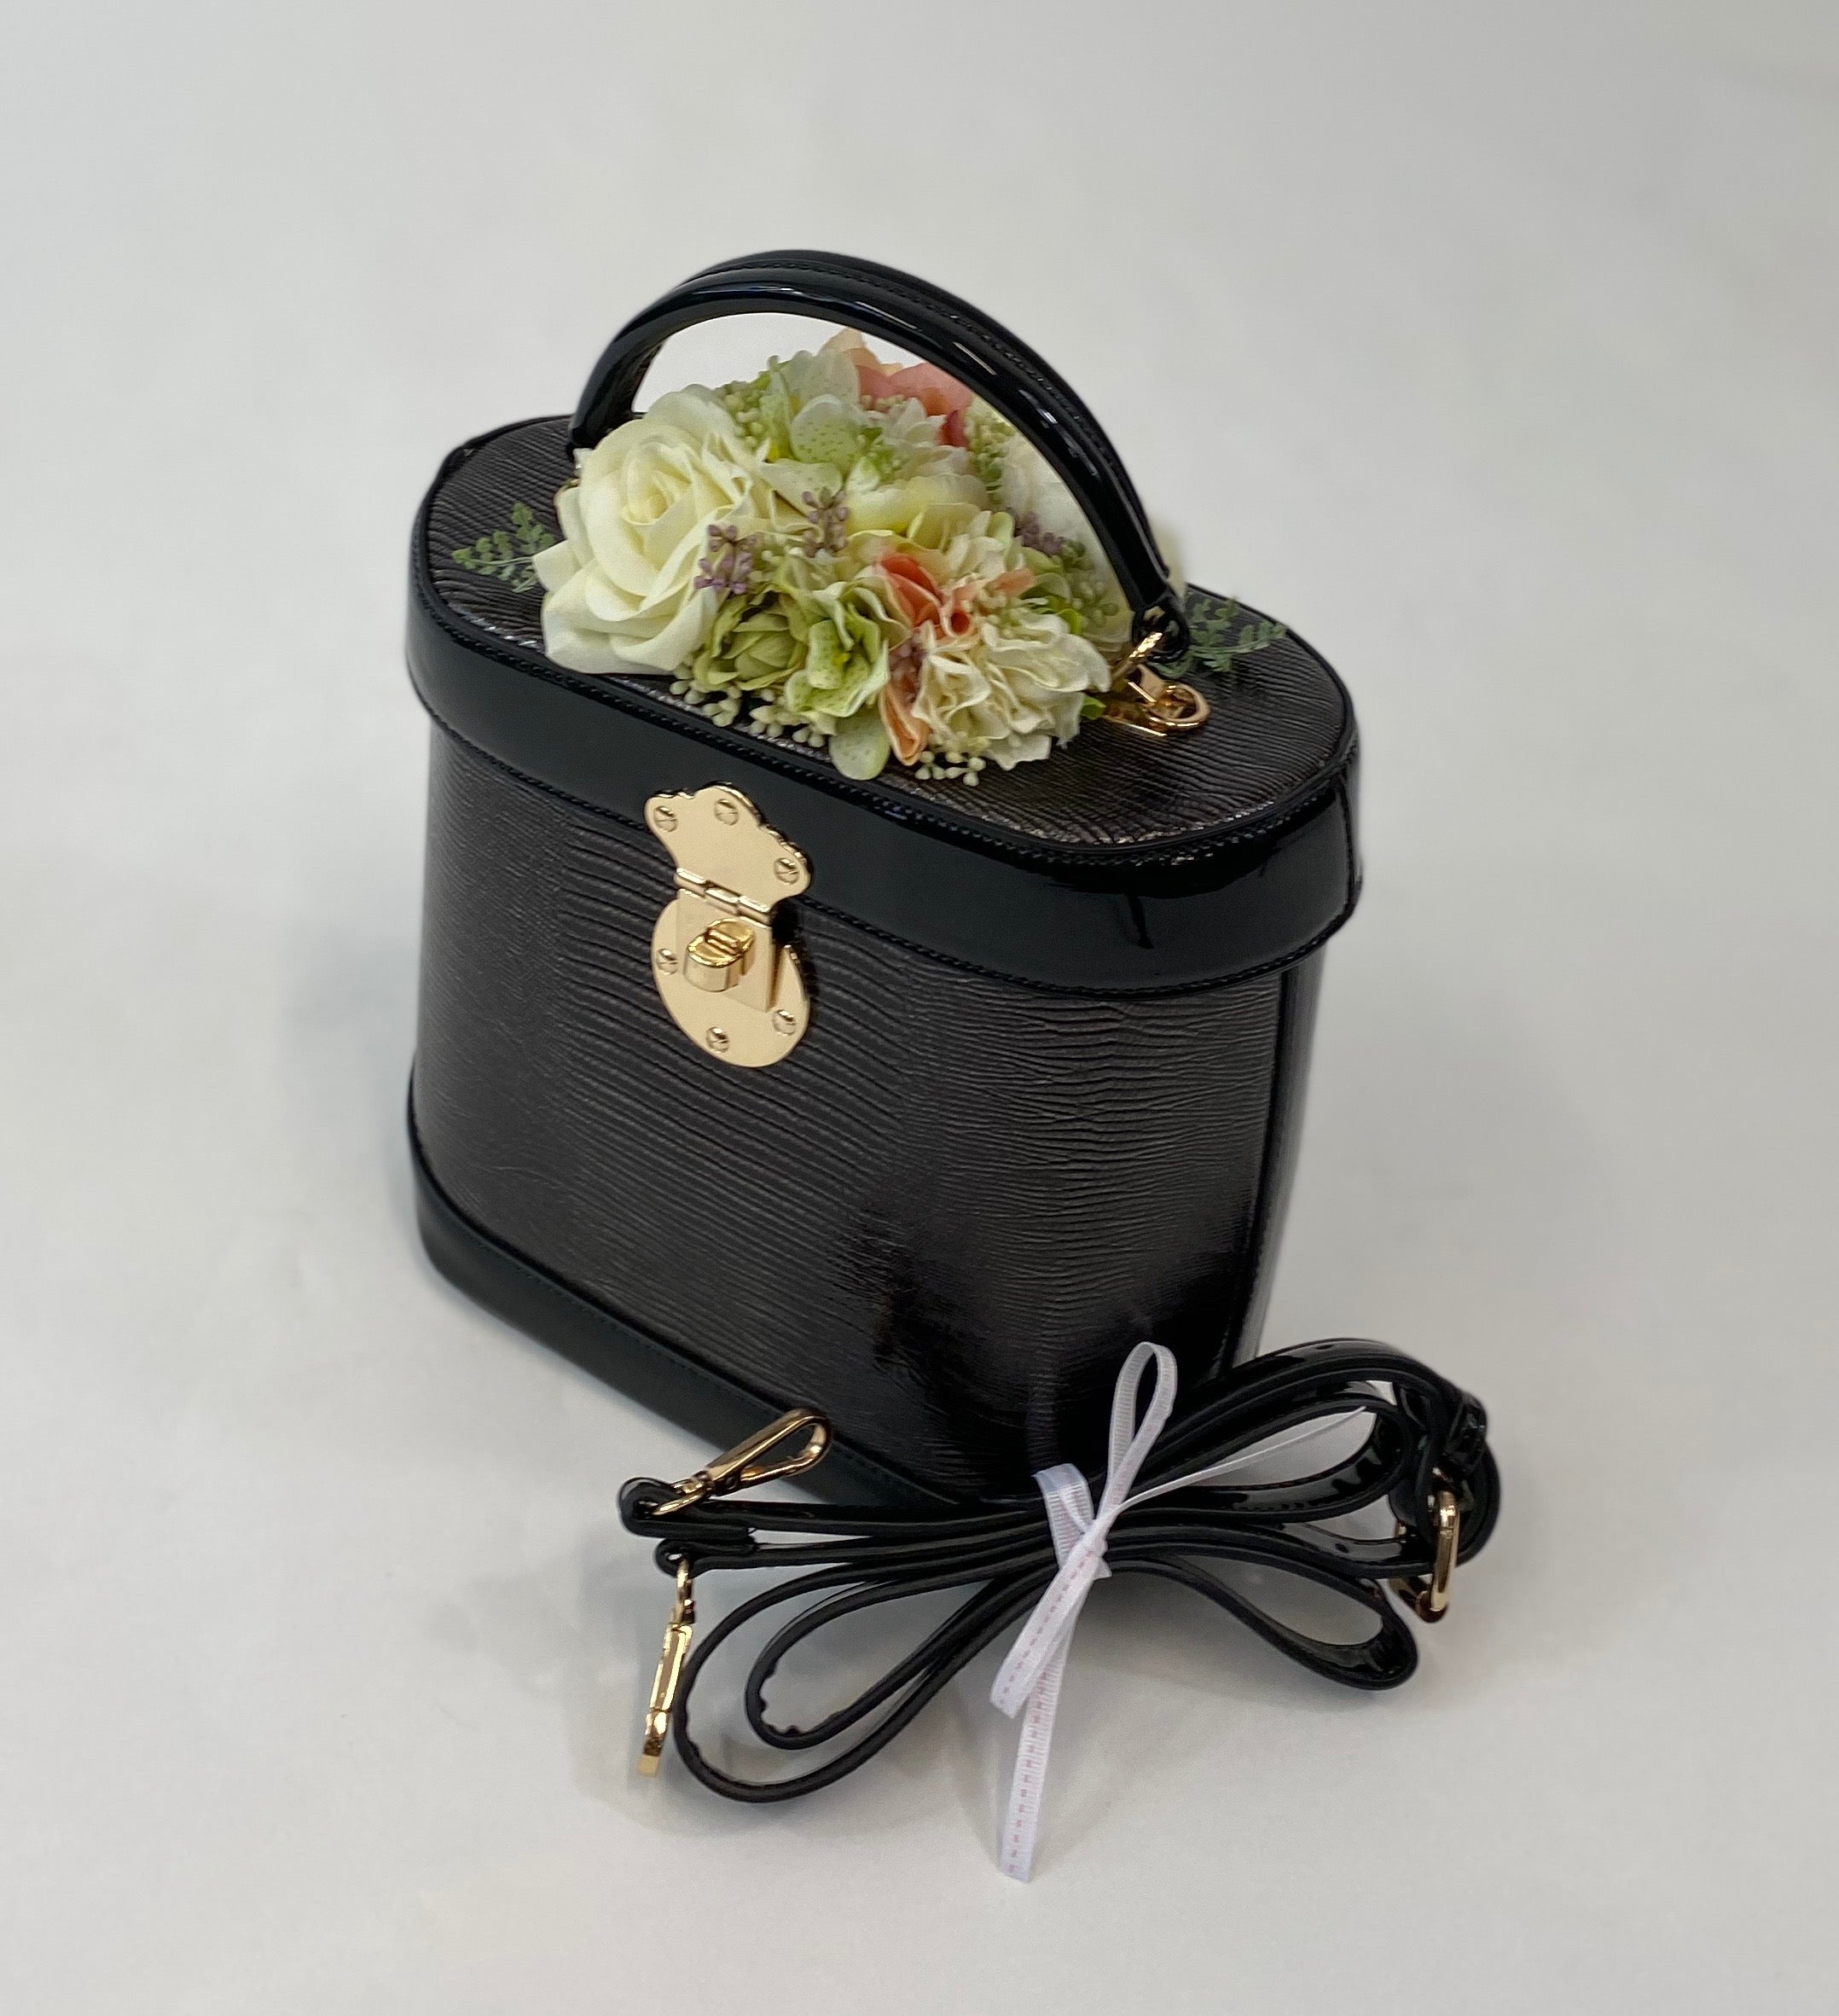 Vintage Handbags, Purses, Bags *New* Classic Vintage Style Charlotte Handbag In Classic Black With Blooms £55.00 AT vintagedancer.com